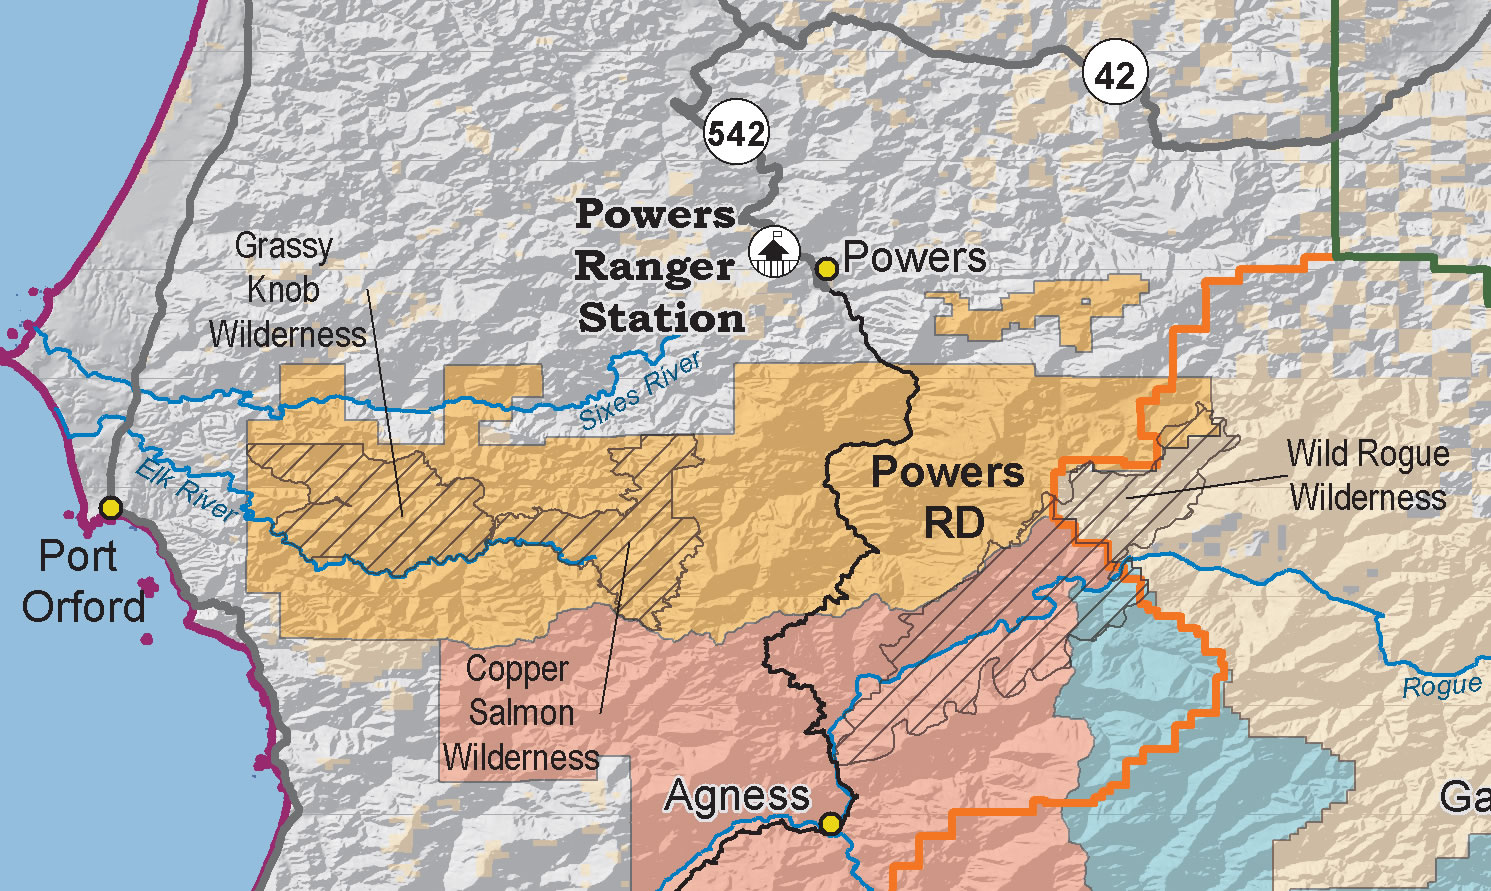 Rogue River Siskiyou National Forest Powers Ranger District